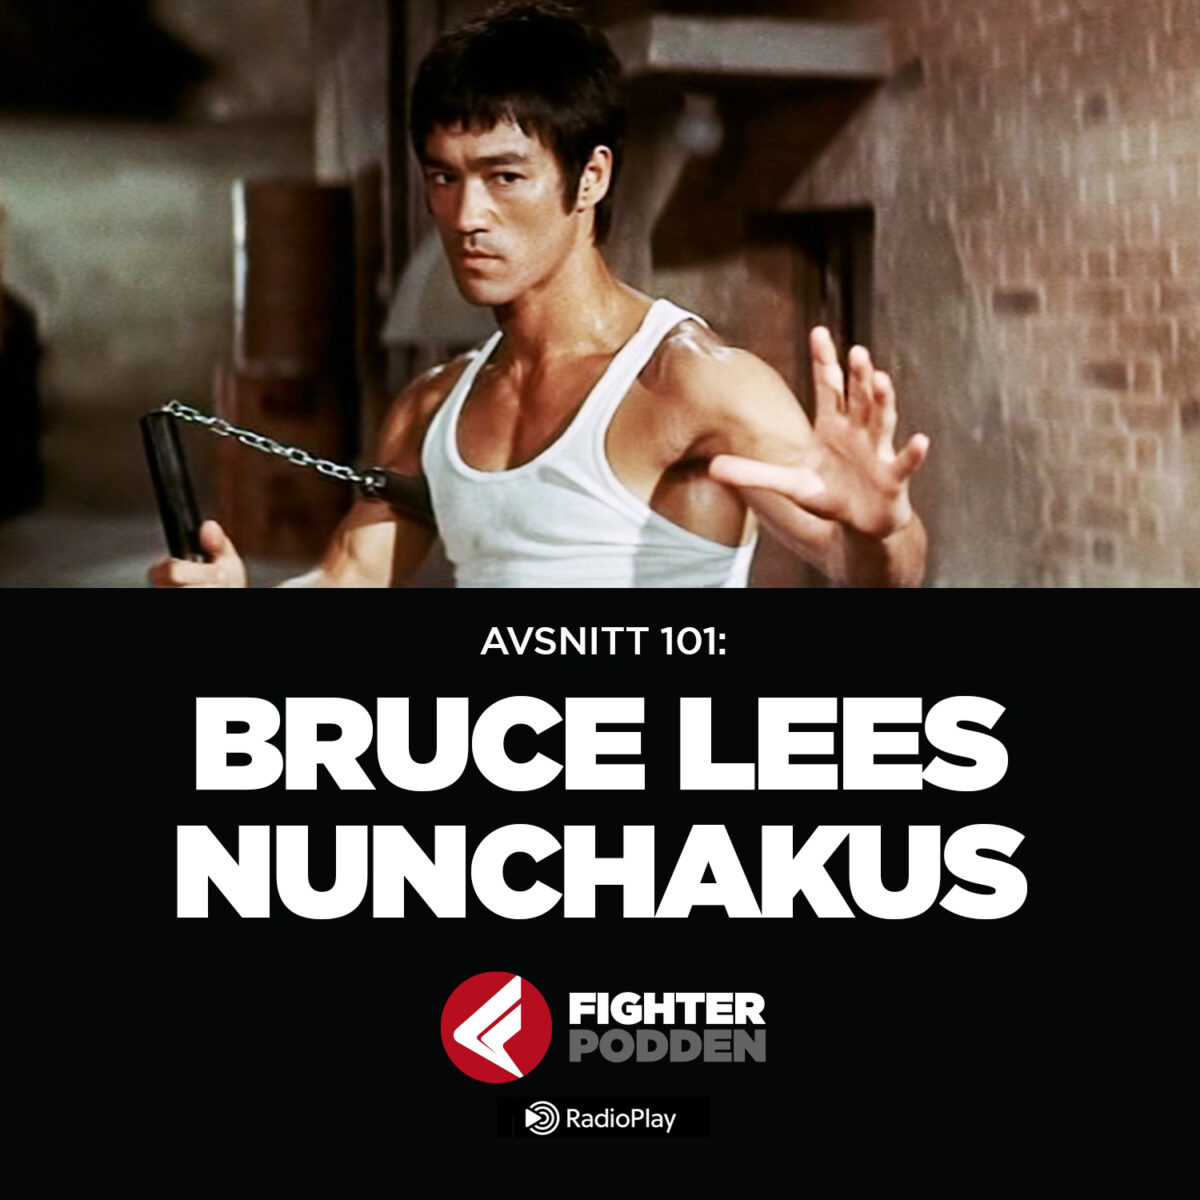 Fighterpodden avsnitt 101: Bruce Lees Nunchakus